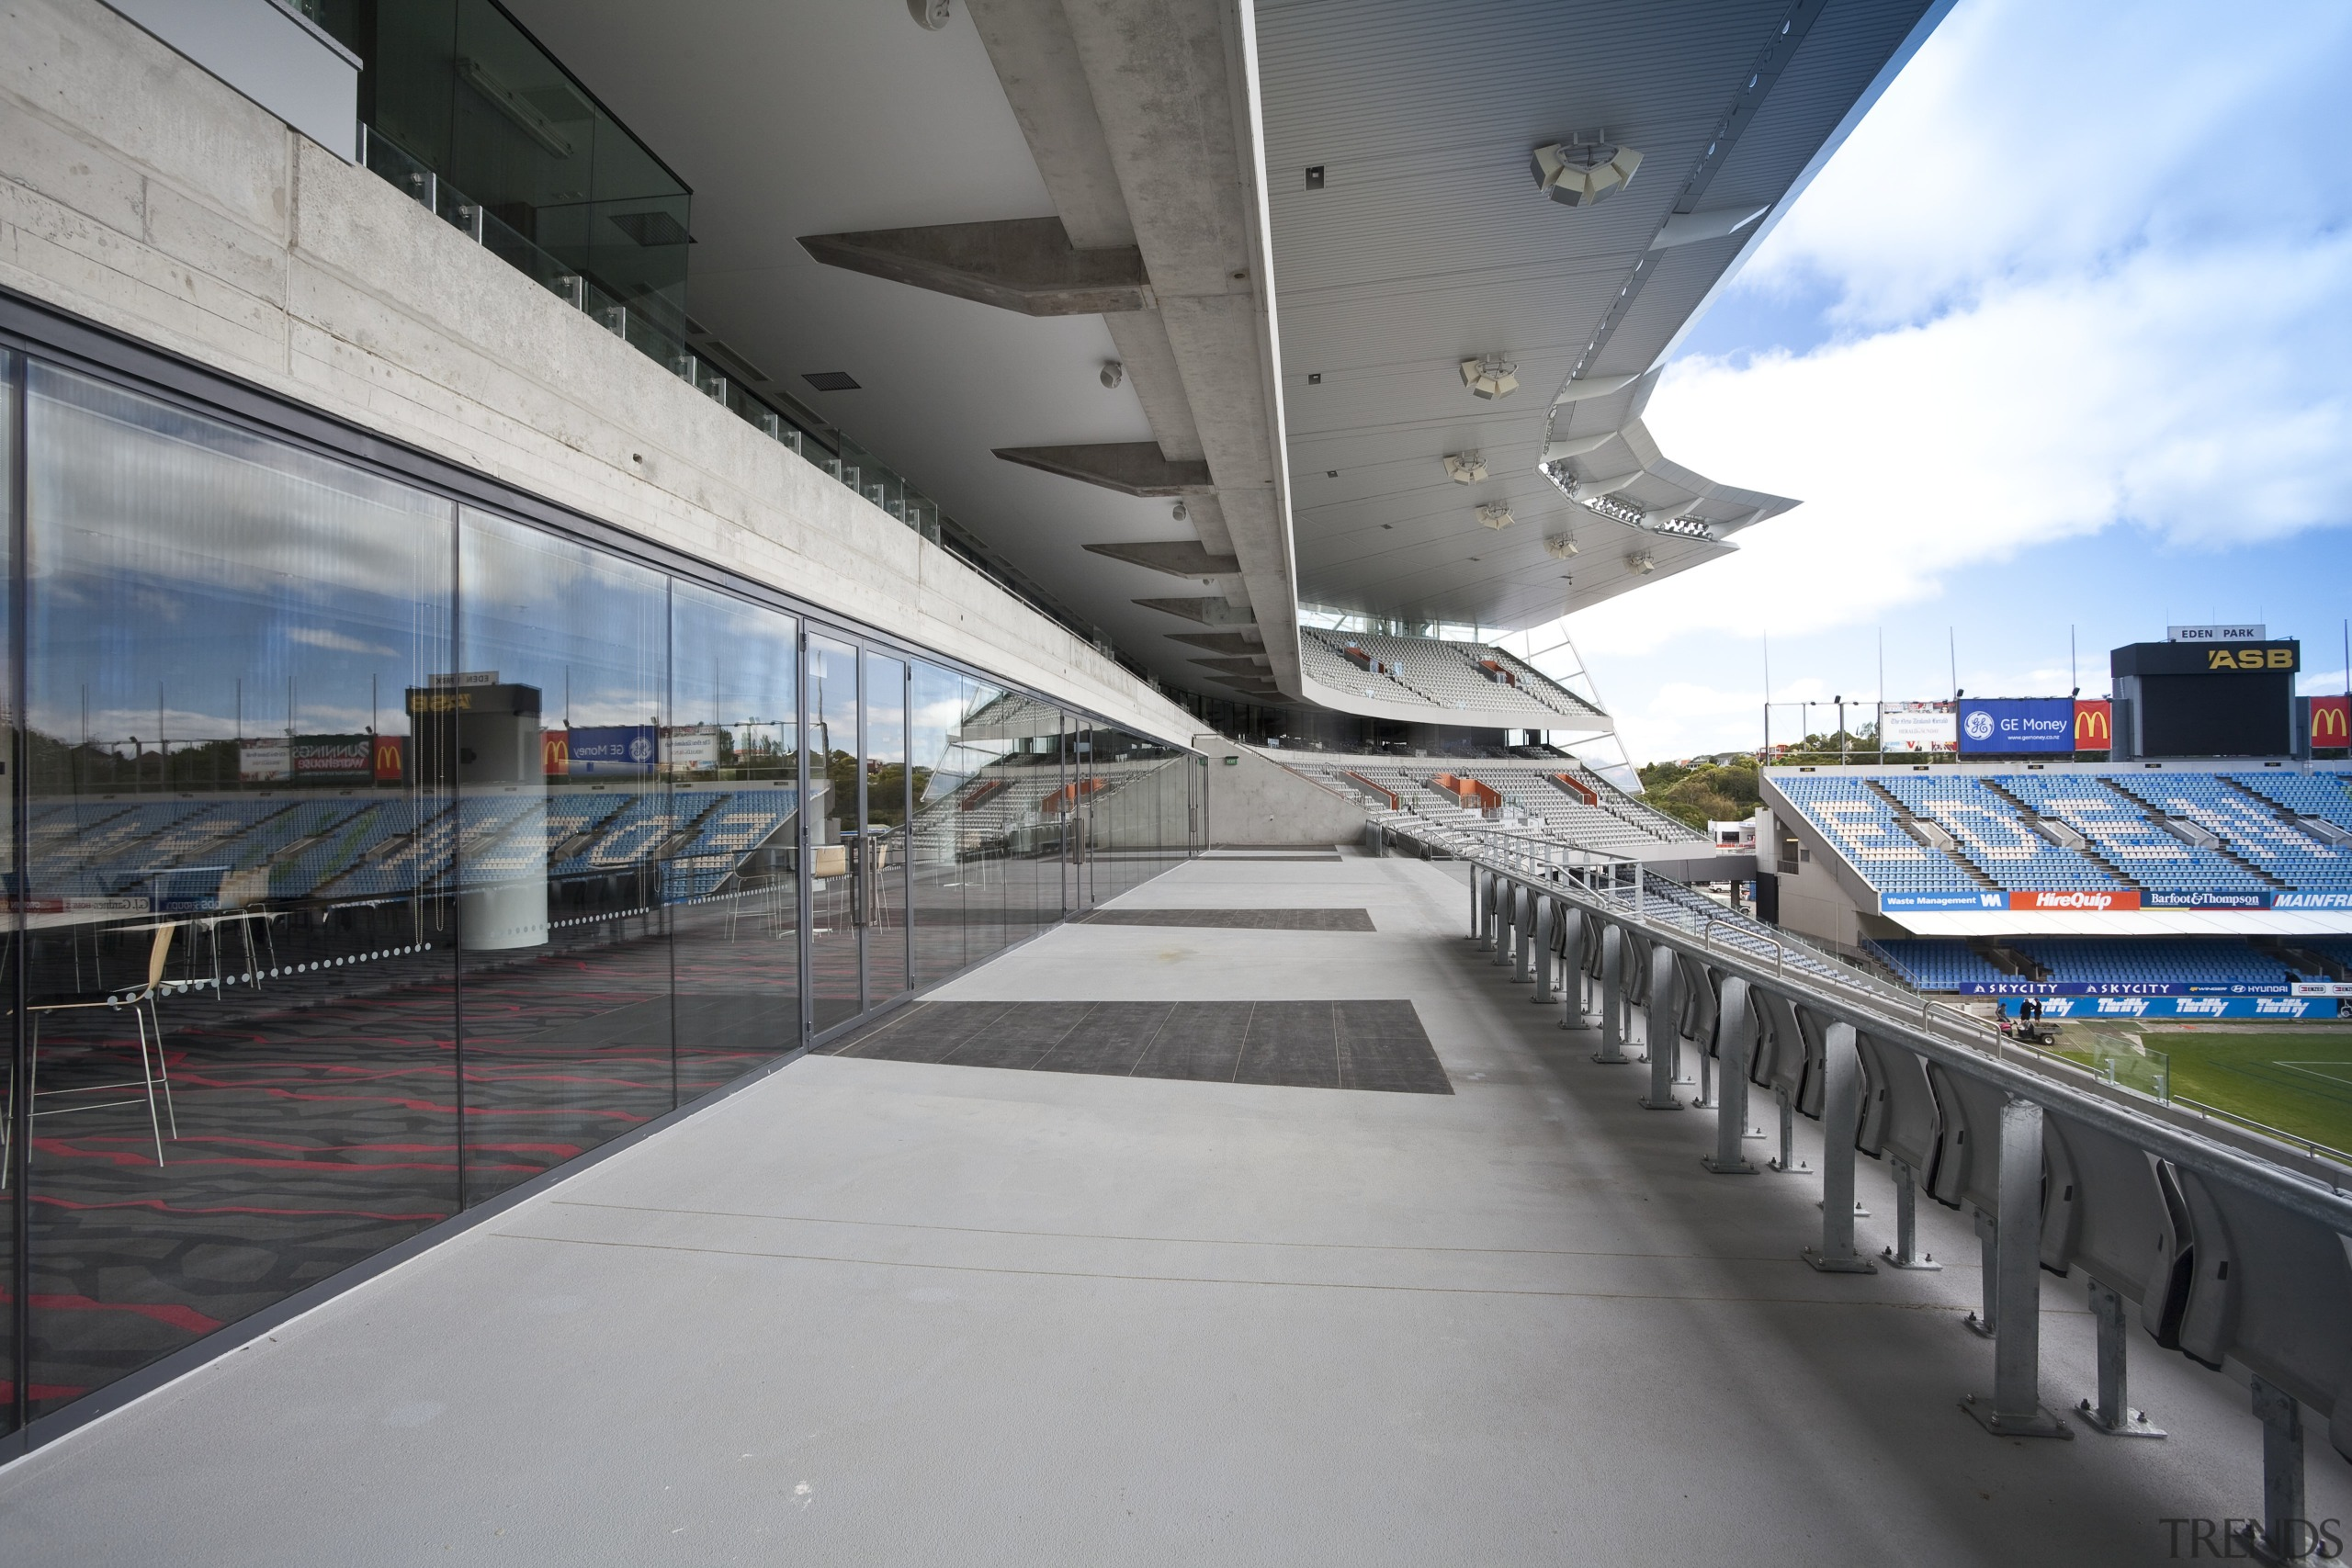 Singer Group undertook the broad array of electrical airport, airport terminal, architecture, infrastructure, metropolitan area, public transport, sky, sport venue, structure, gray